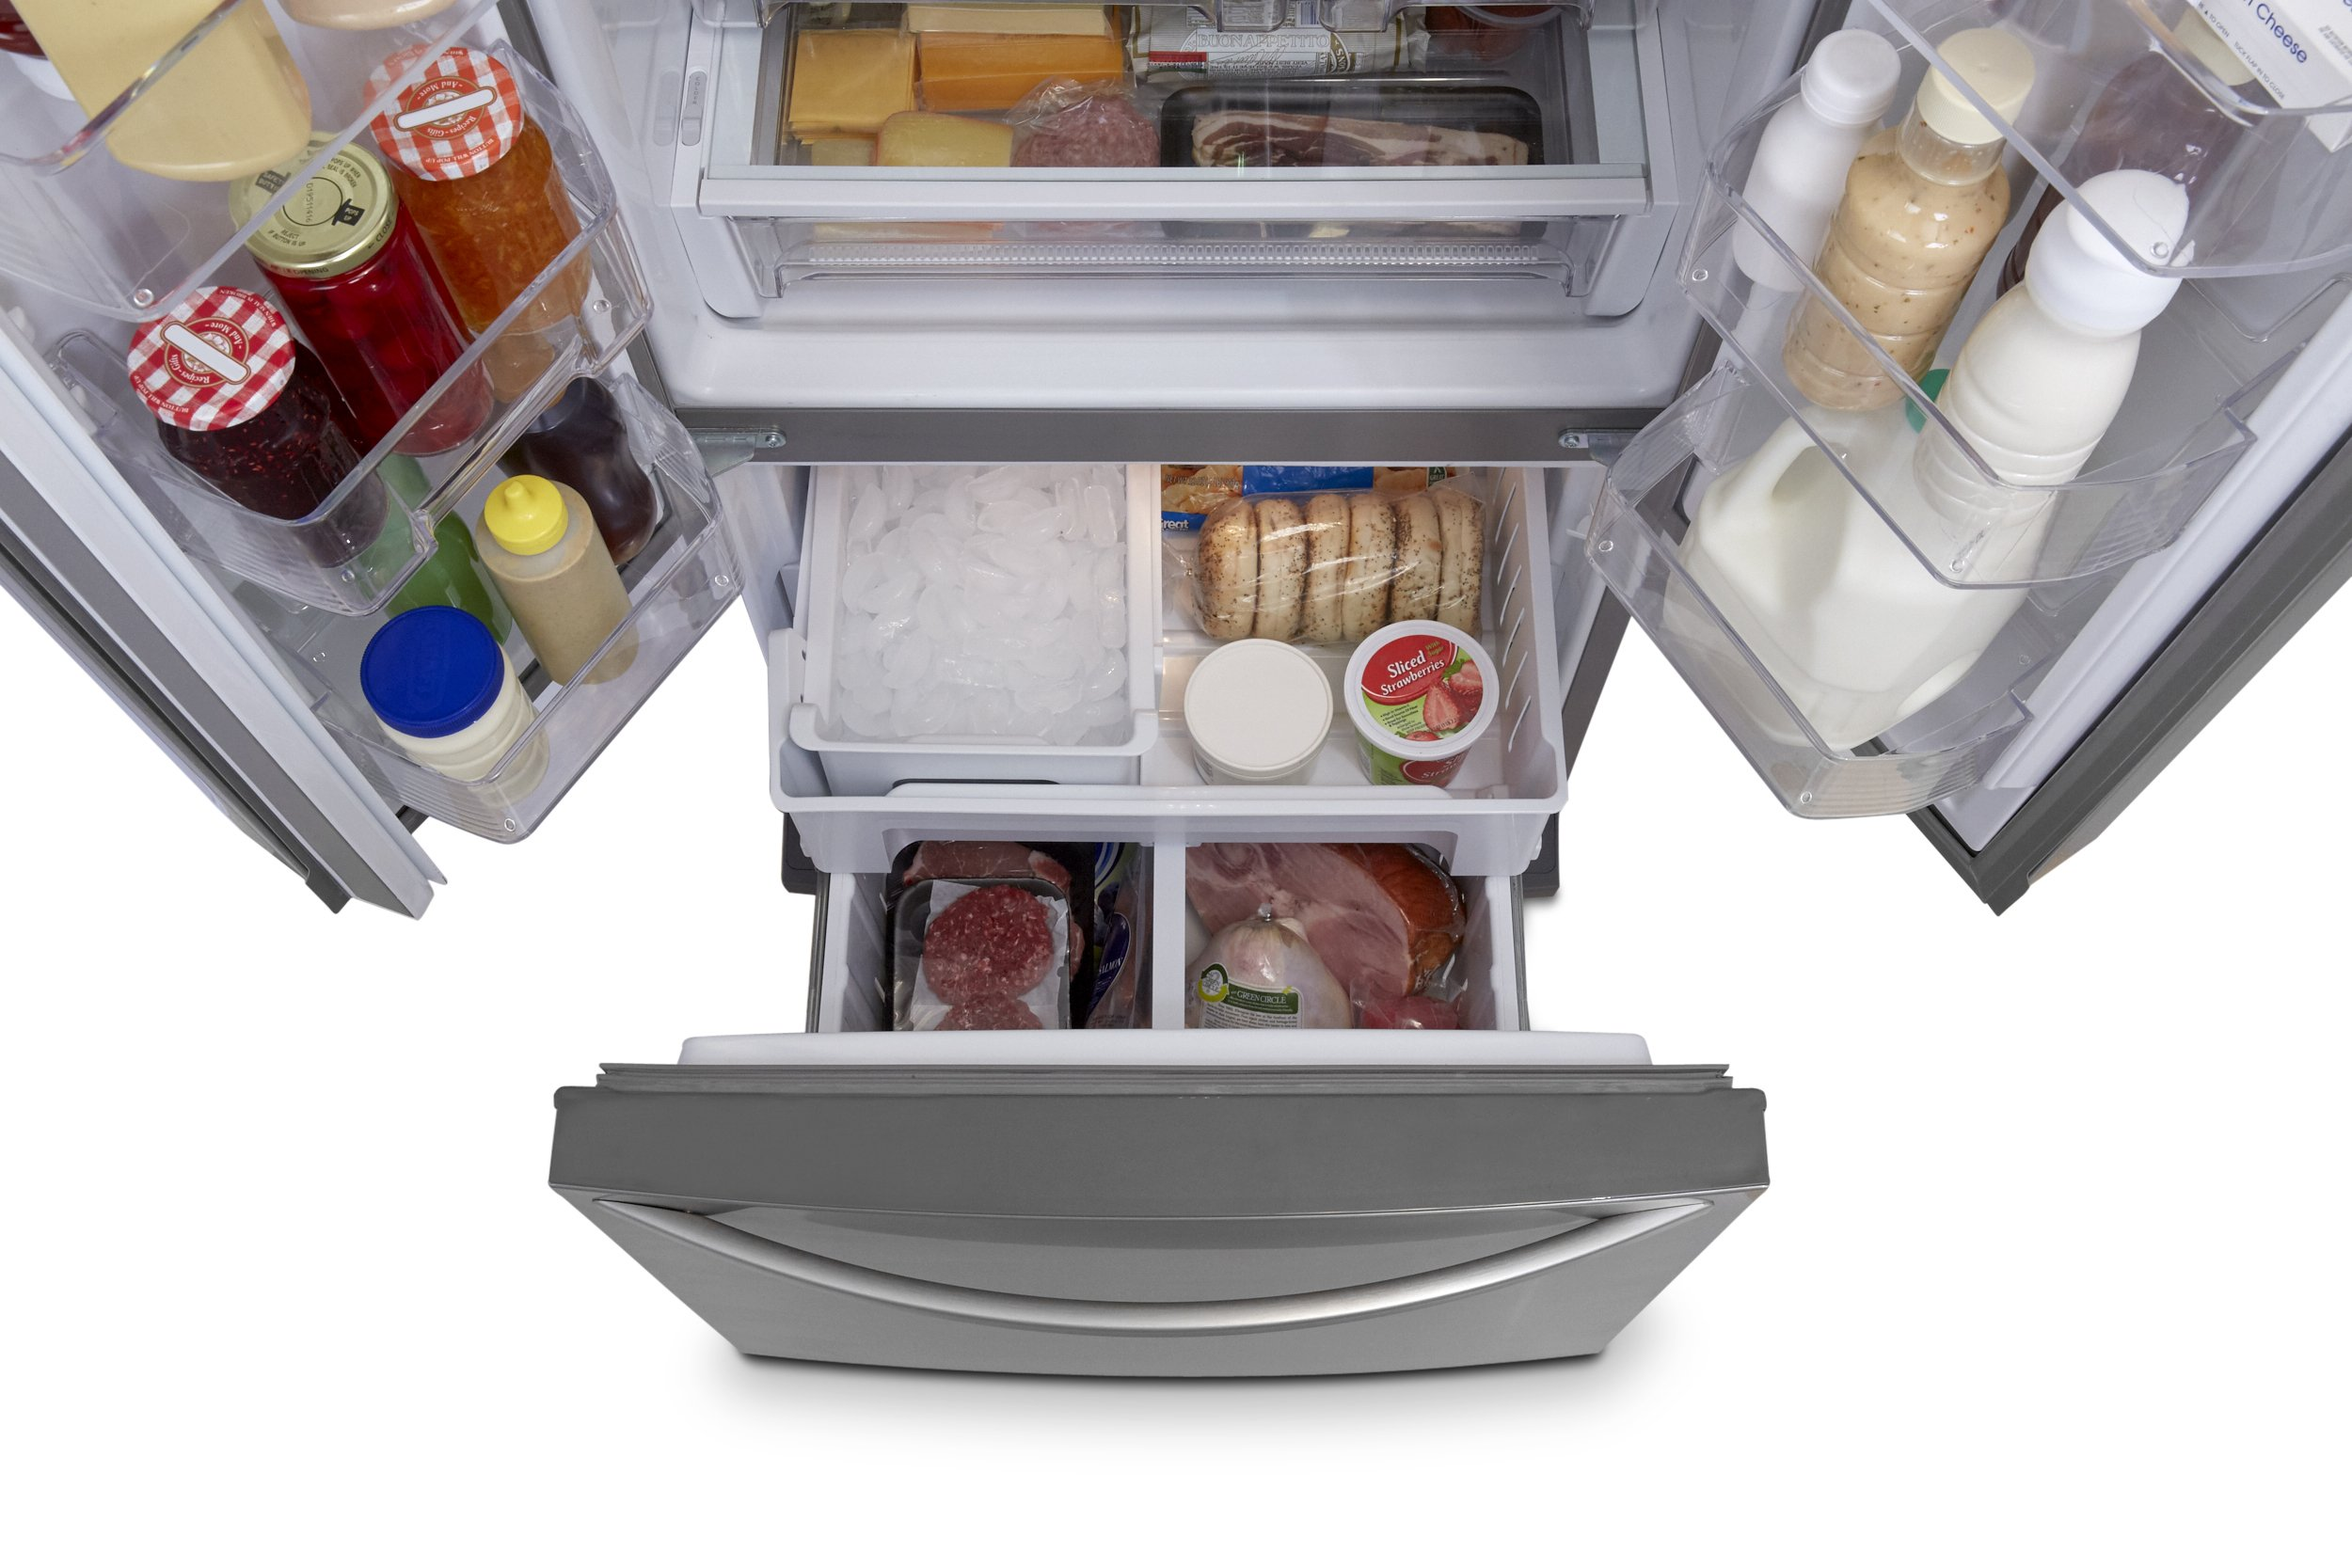 Kenmore 73003 19.5 cu. ft. Non-Dispense French Door Bottom-Freezer Refrigerator in Stainless Steel, includes delivery and hookup (Available in select cities only) by Kenmore (Image #6)